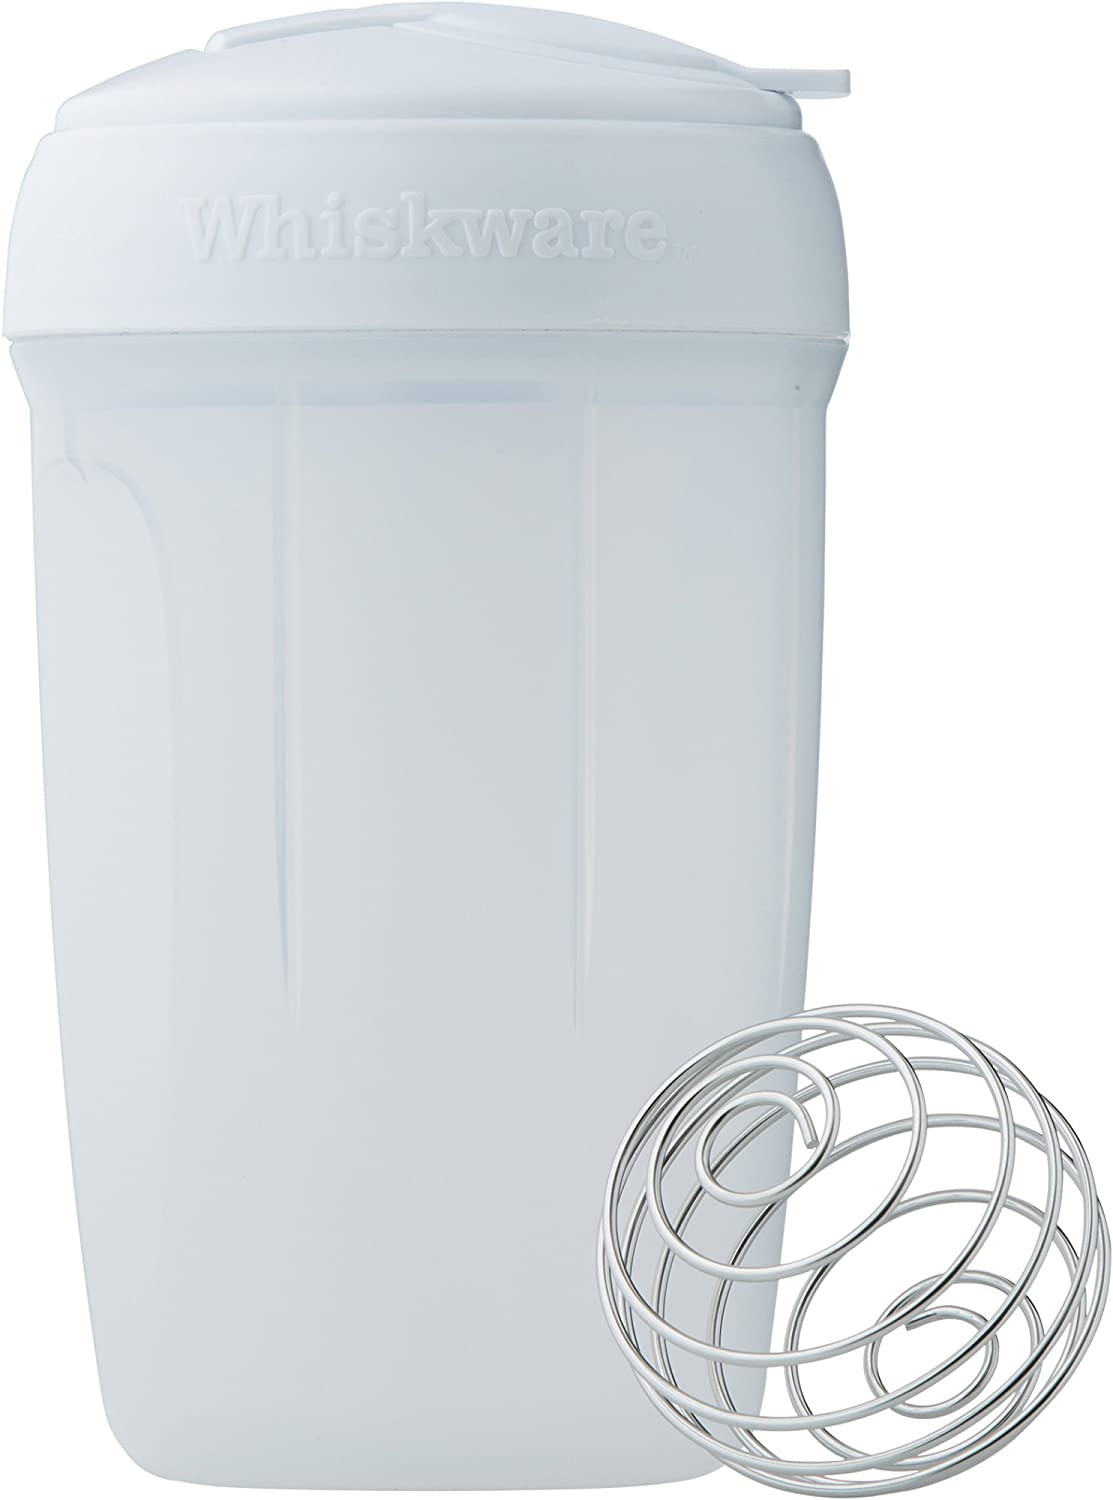 Whiskware Egg Mixer with BlenderBall Wire Whisk